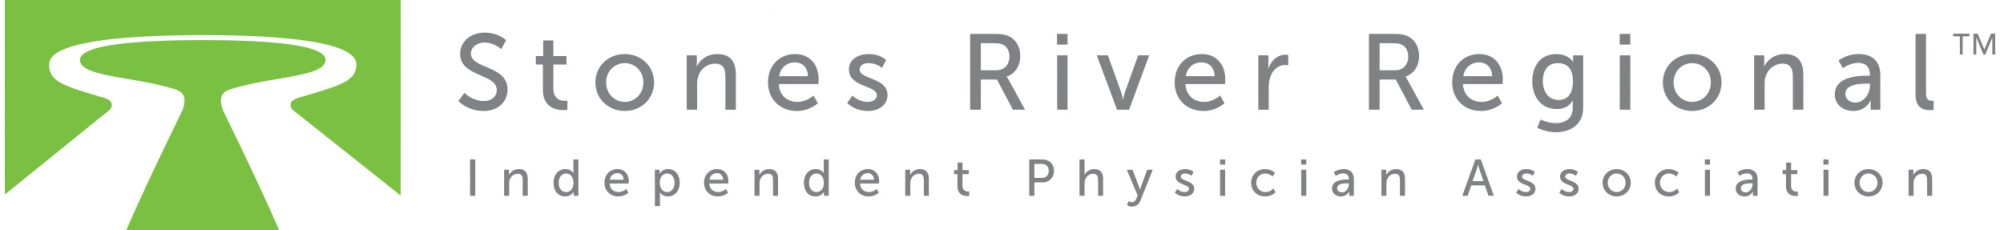 Stones River Regional Independent Physician Association